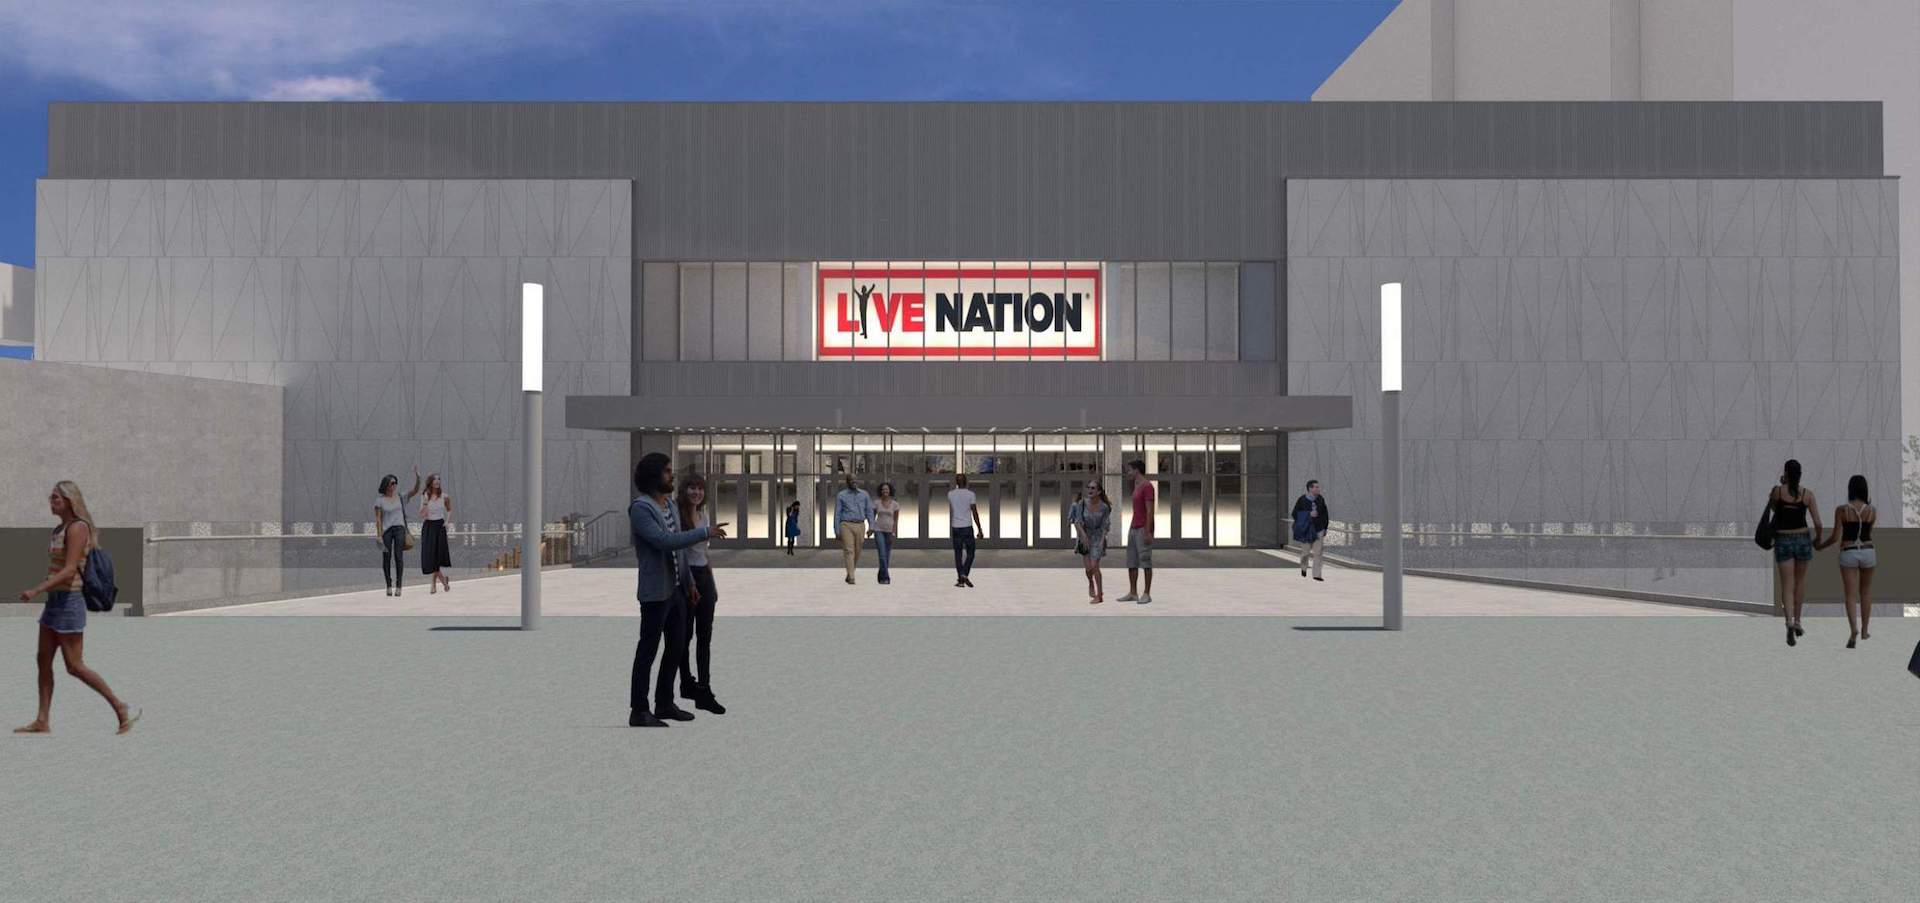 Lloyd Center West Anchor Remodel - Live Nation